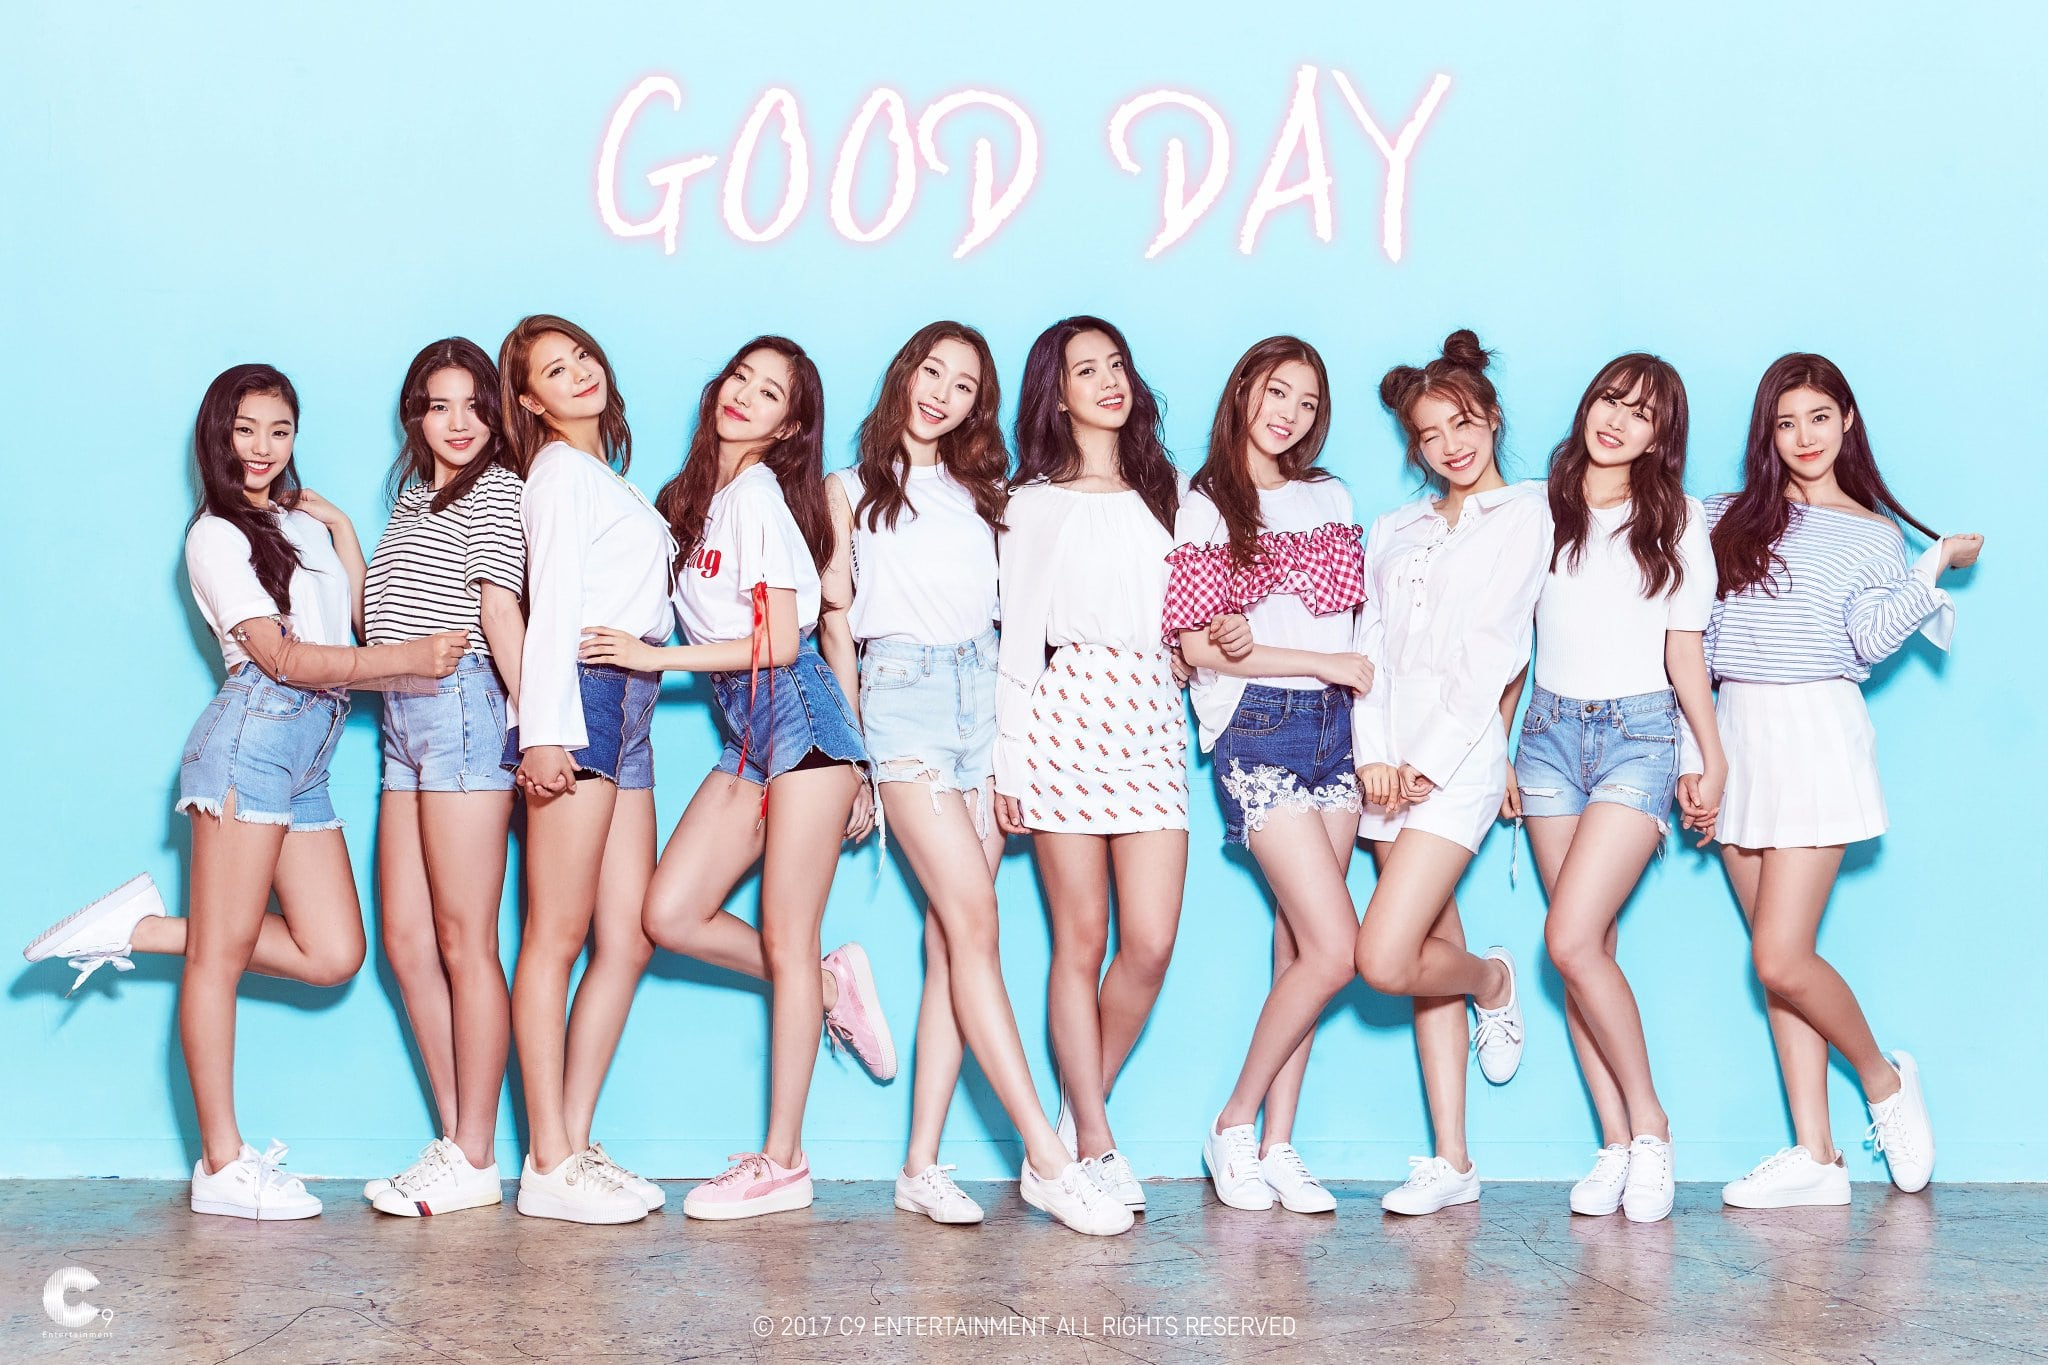 Update: C9 Entertainment's Upcoming Girl Group Good Day Drops B-Cuts Of Teaser Photos